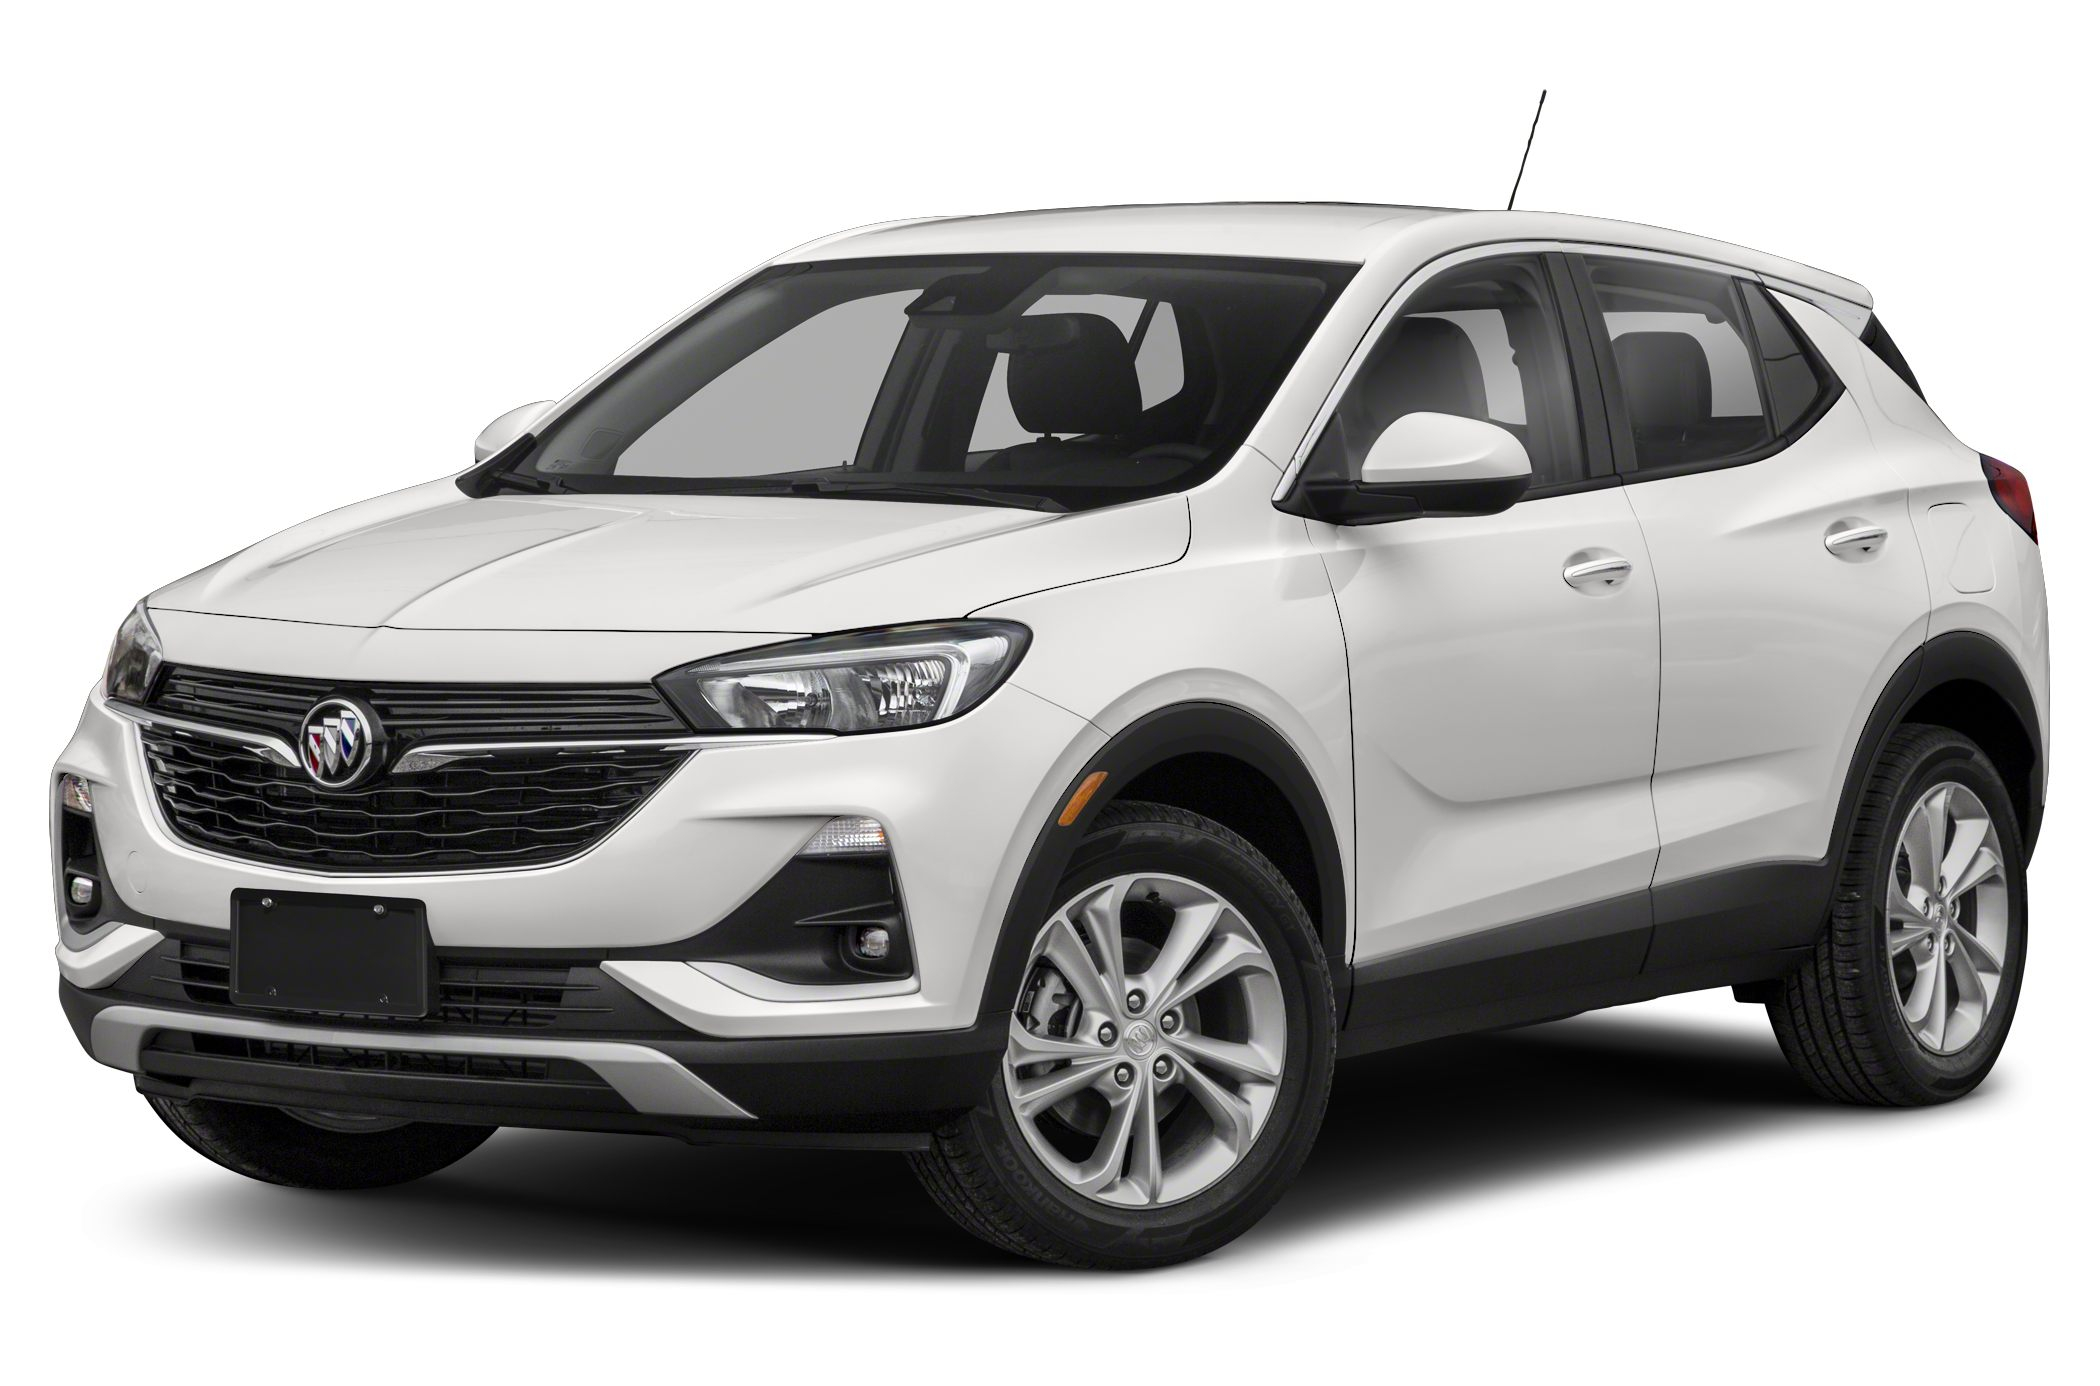 2021 Buick Encore Gx Preferred All-Wheel Drive Specs And Prices New 2021 Buick Encore Reviews, Preferred, Price